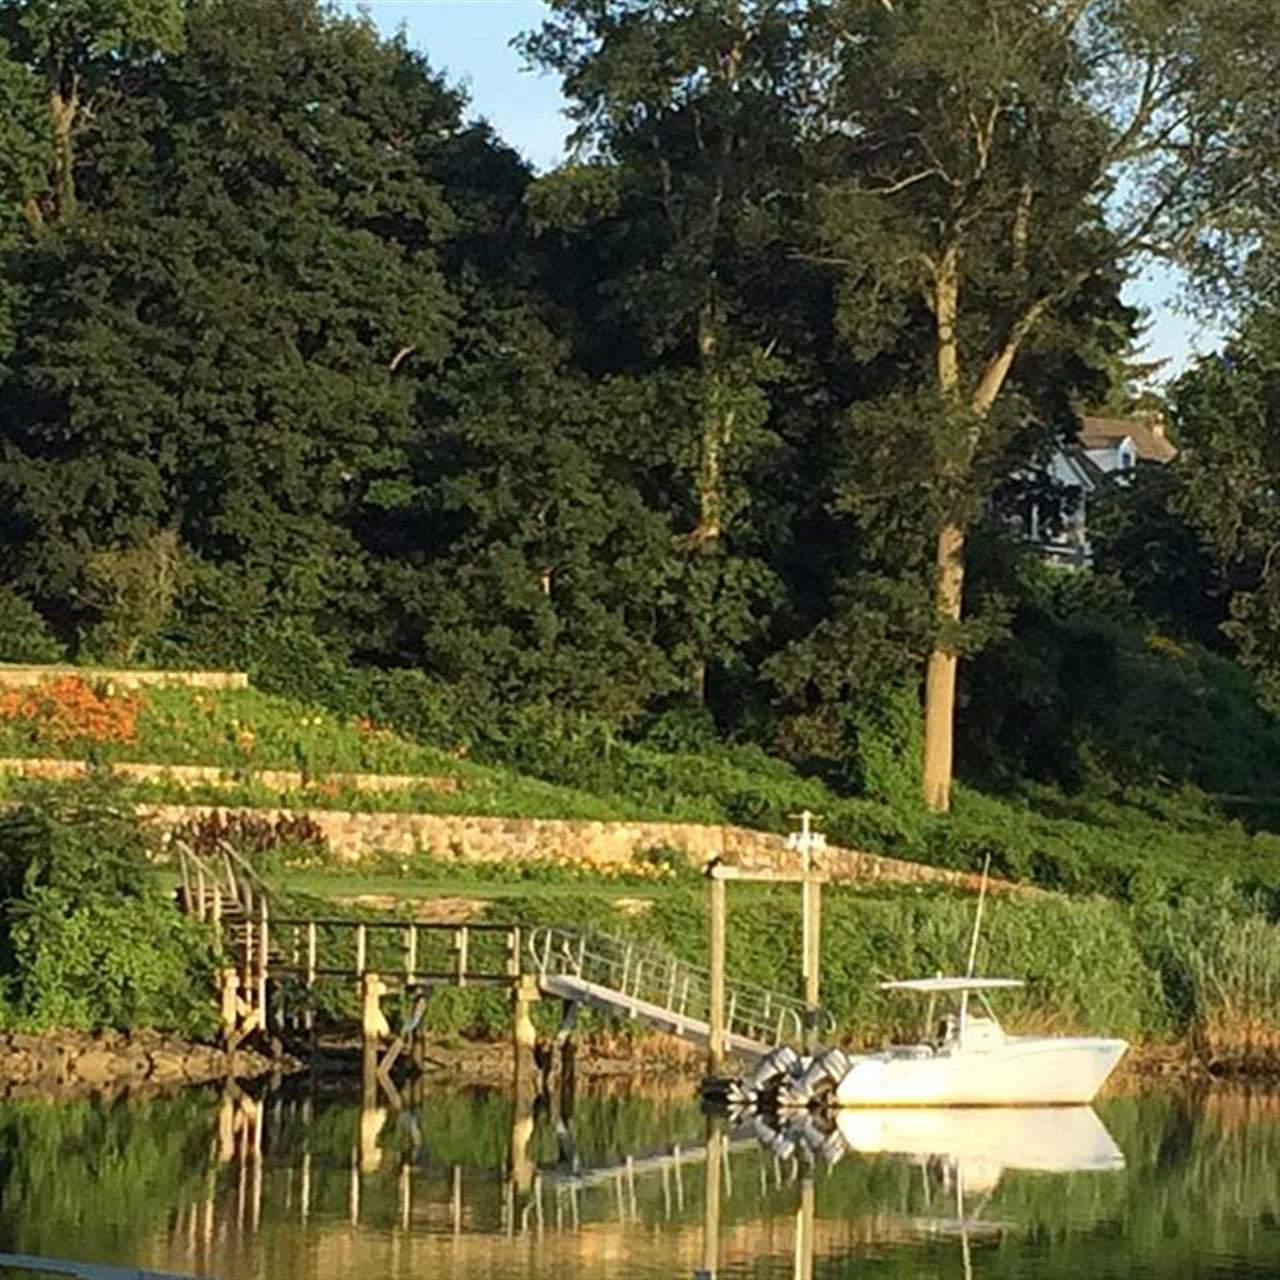 Another stunning view from my favorite bridge in the evening summer sun. #coastalconnecticut #FairfieldCT #FairfieldCT #ilovefairfield #sascohill #harbor #july2015 #middleofsummer #LeadingRELocal